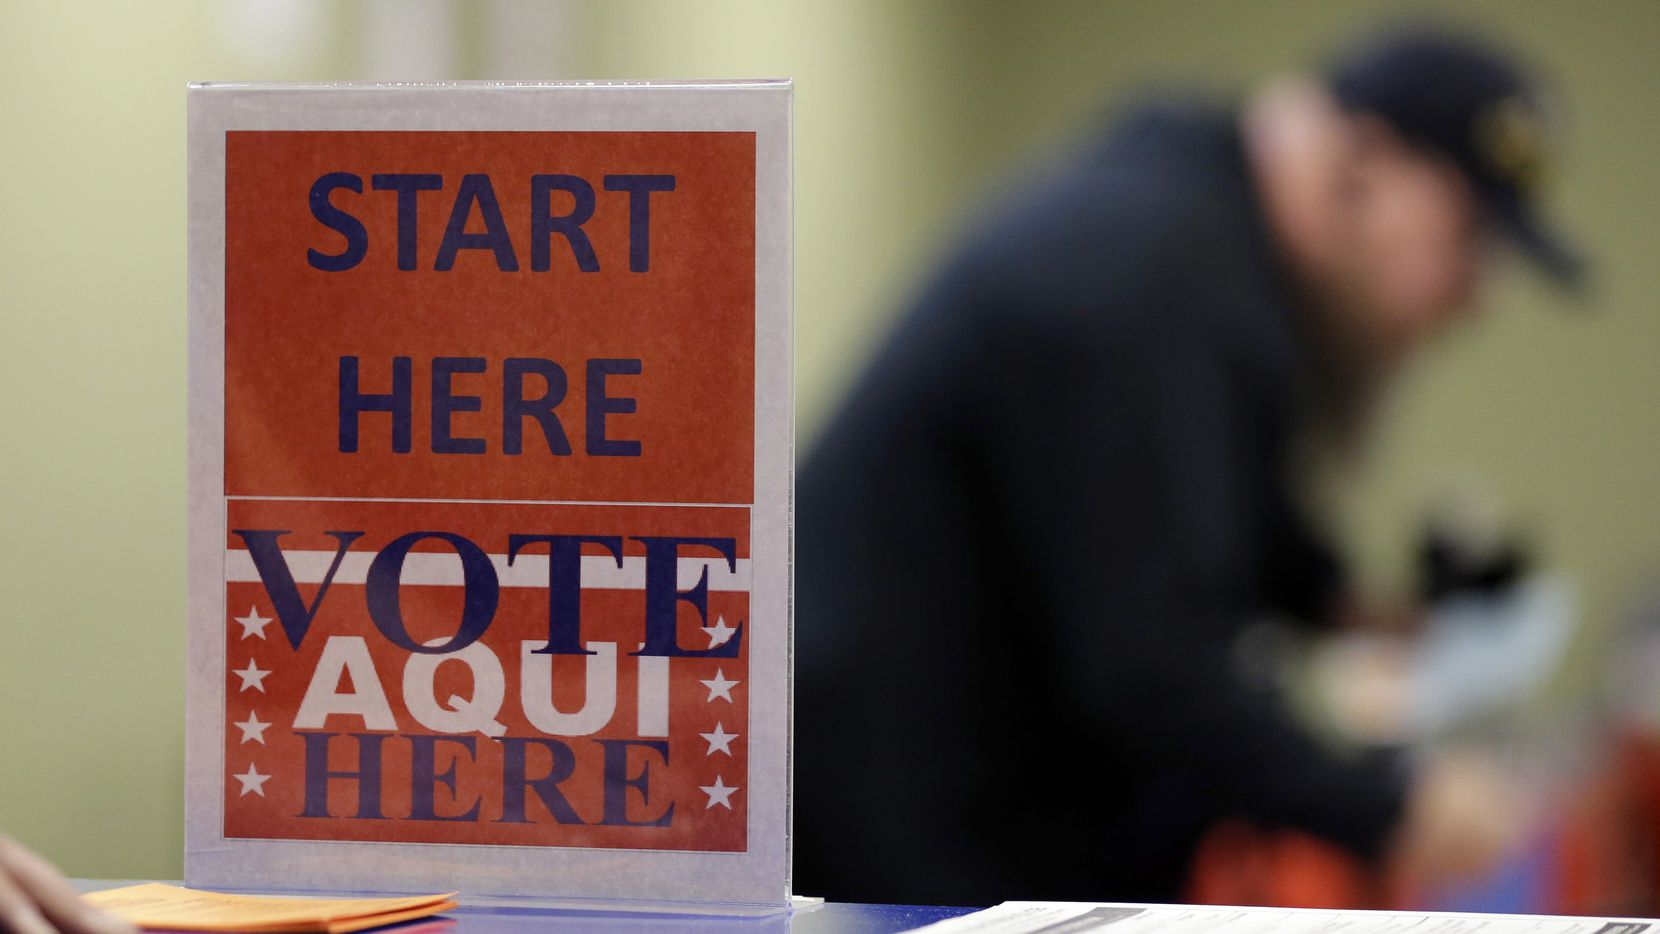 Your friends at The Dallas Morning News' editorial board have provided for you a way to research candidates. Read our Voter Guide at dallasnews.com/voterguide.